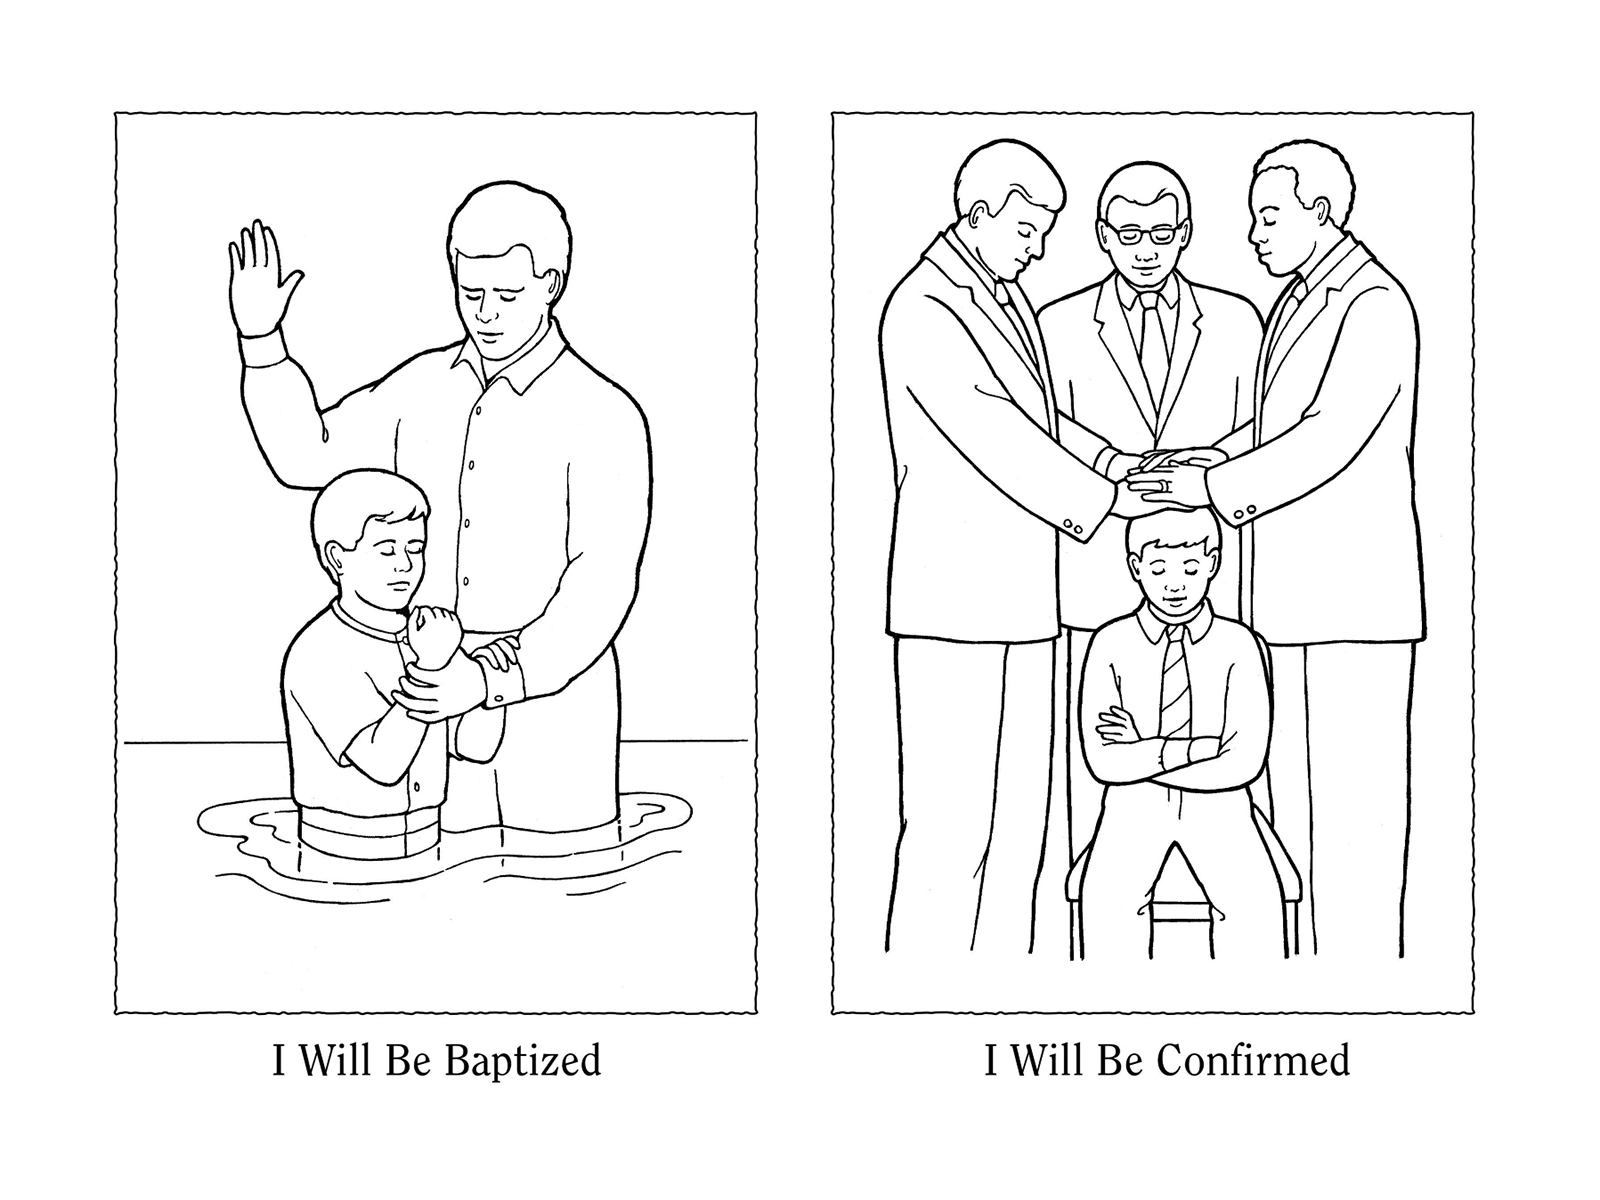 Nursery Manual Page 111 I Will Be Baptized And Confirmed - Lds-nursery-coloring-pages